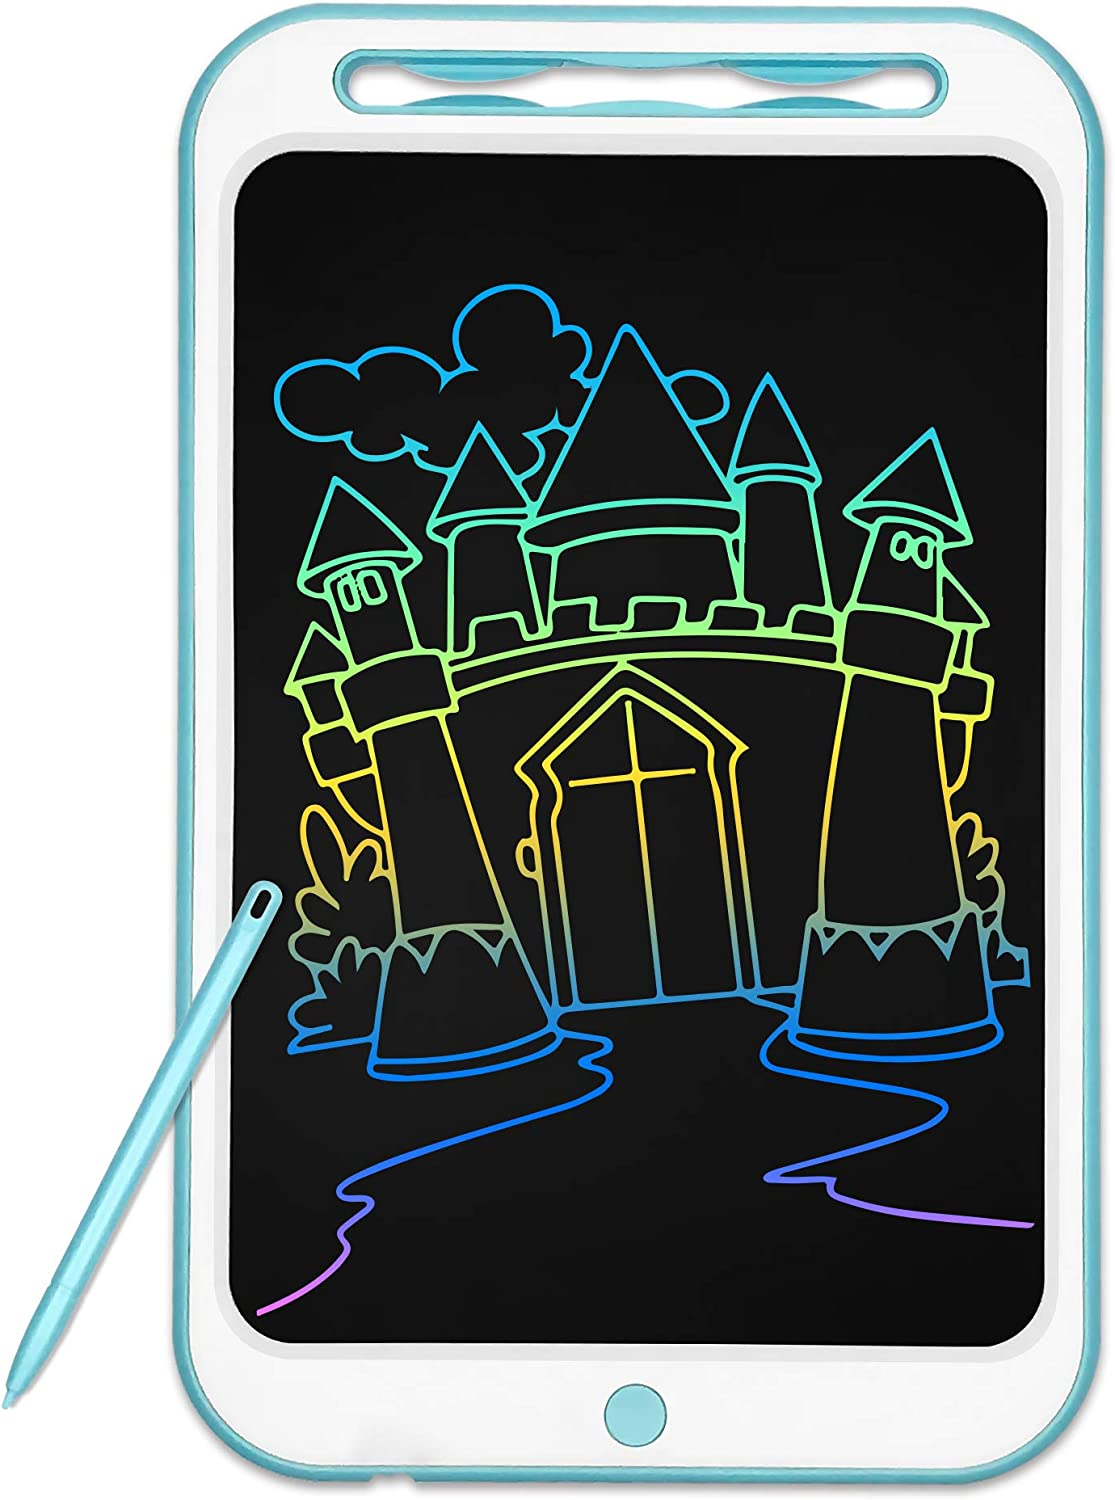 Richgv LCD Writing Tablet Doodle Board, 12 Inch Colorful Drawing Tablet Writing Pad Portable , Boys Girls Gifts Educational Learning Toys for 3 4 5 6 7 8 yeas Old Kids